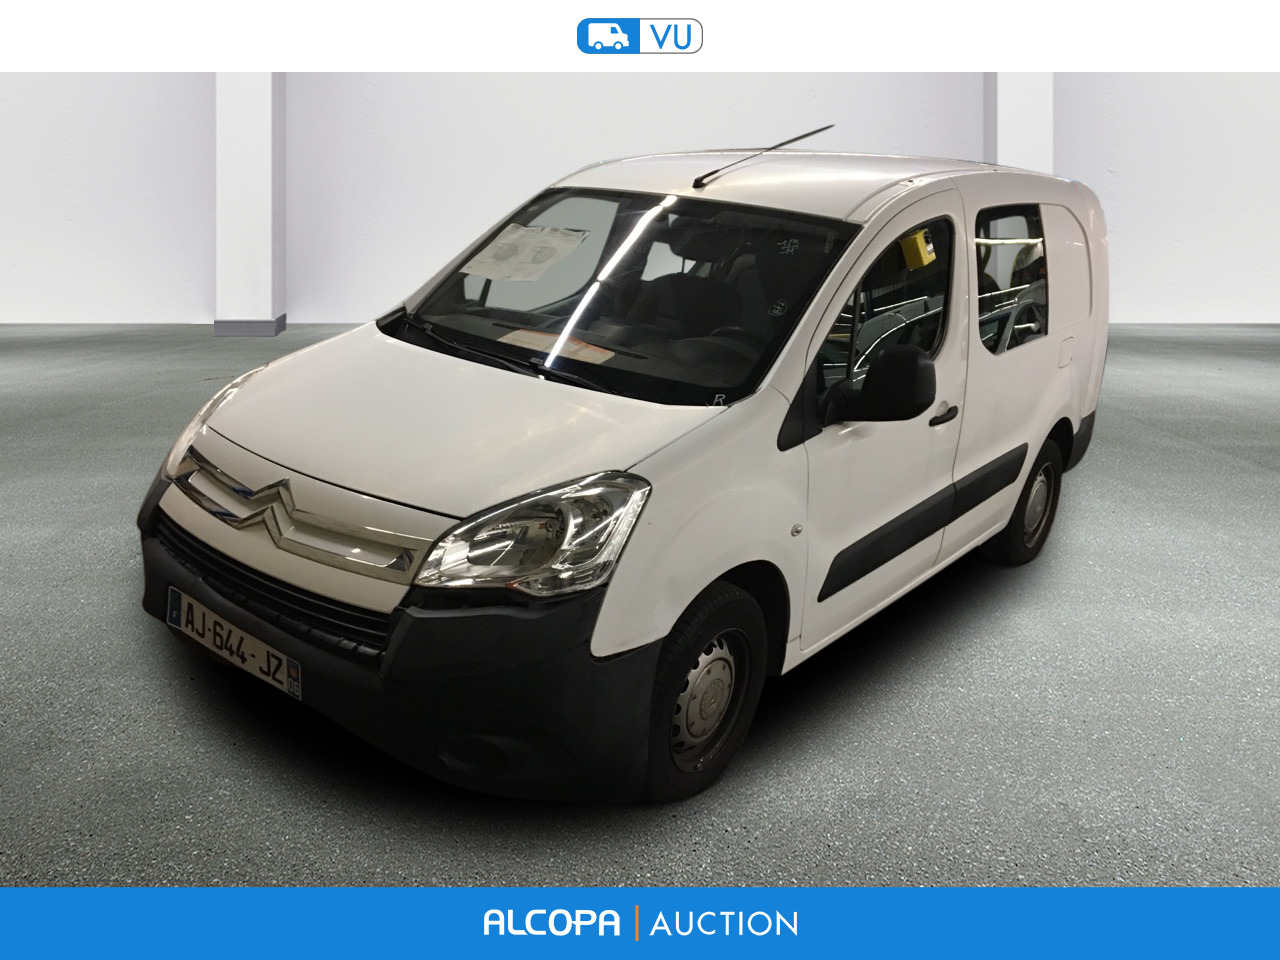 citroen berlingo berlingo 1 6 hdi 92 cab appr beauvais alcopa auction. Black Bedroom Furniture Sets. Home Design Ideas